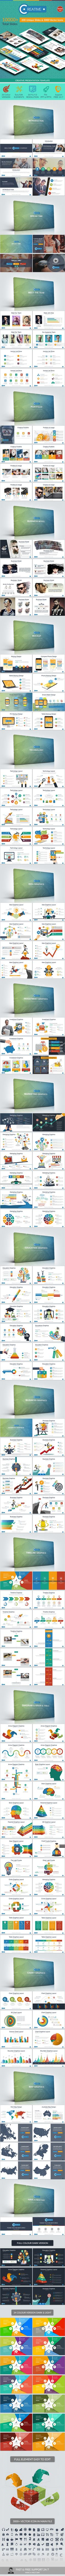 Creative Presentation Powerpoint Template. Download here: http://graphicriver.net/item/creative-presentation-powerpoint-template/15843562?ref=ksioks